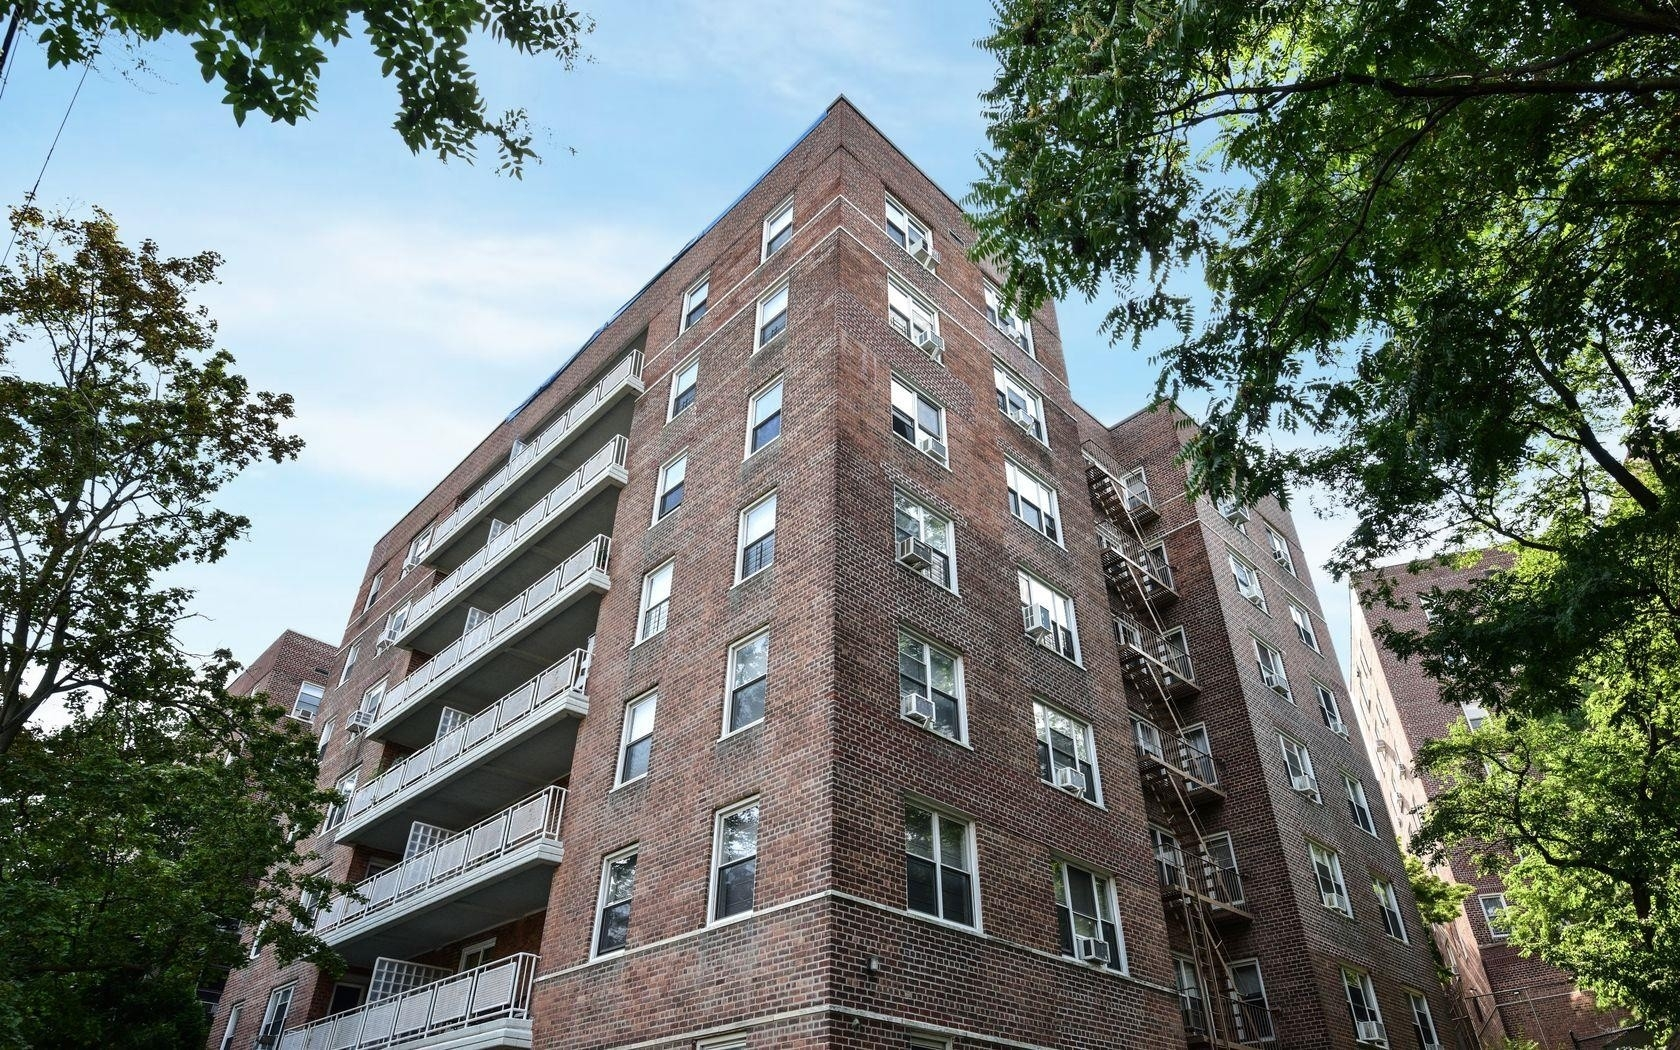 4. 建於5601 Riverdale Avenue, North Riverdale, Bronx, NY